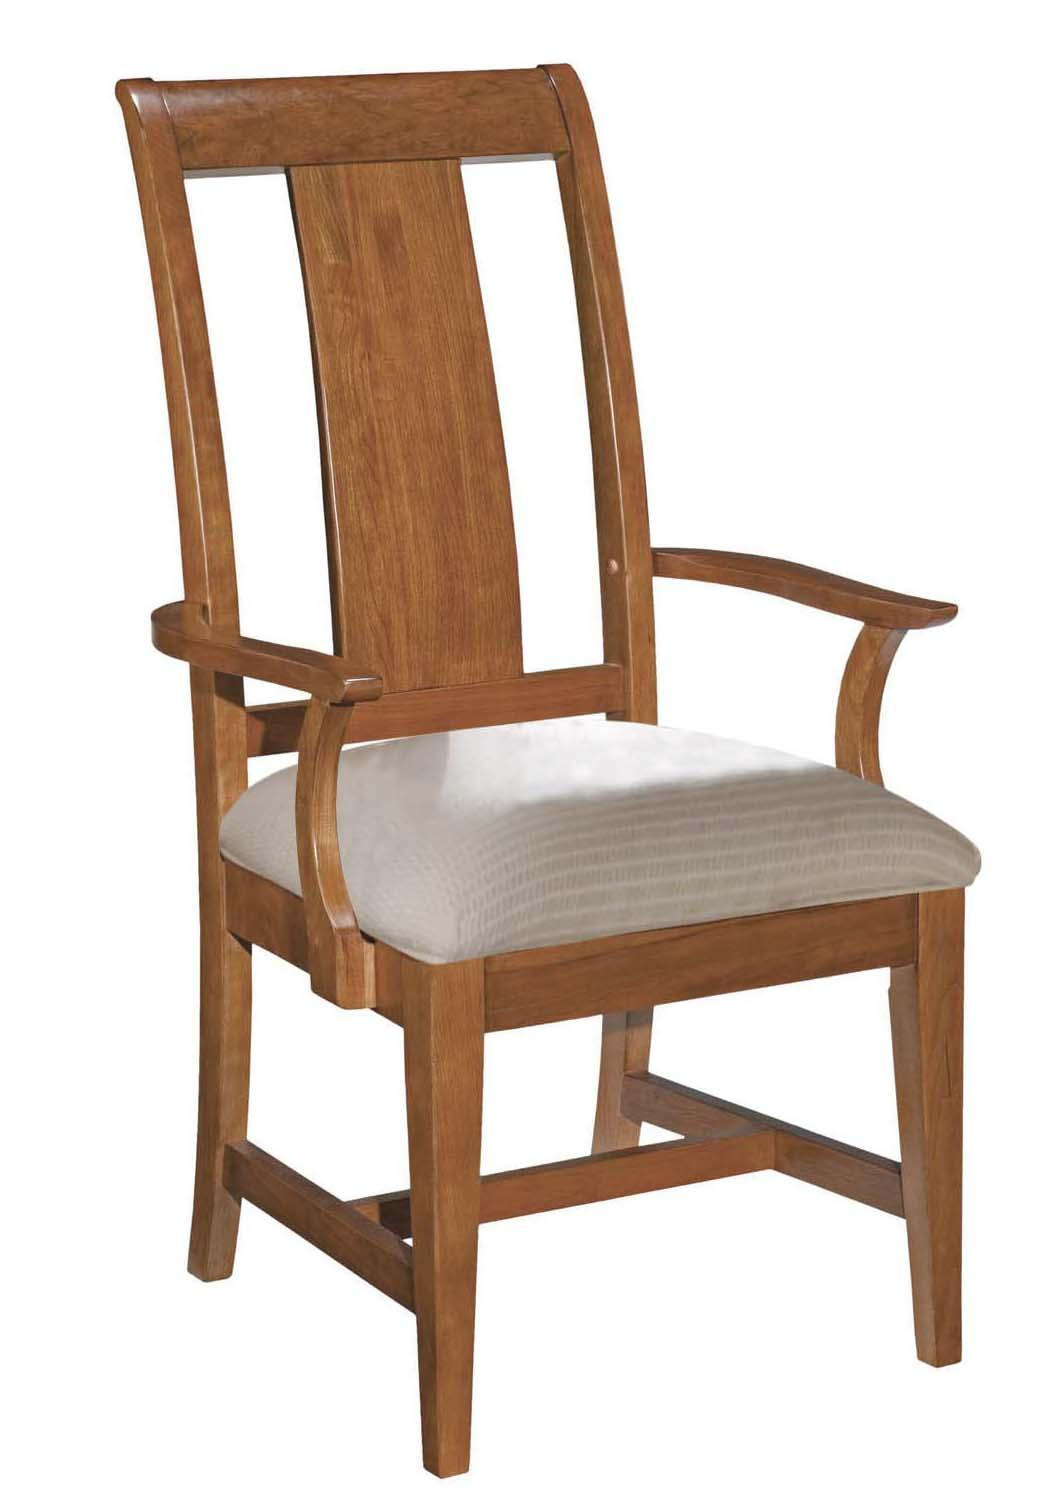 Kincaid Furniture Cherry Park Arm Chair - Item Number: 63-062